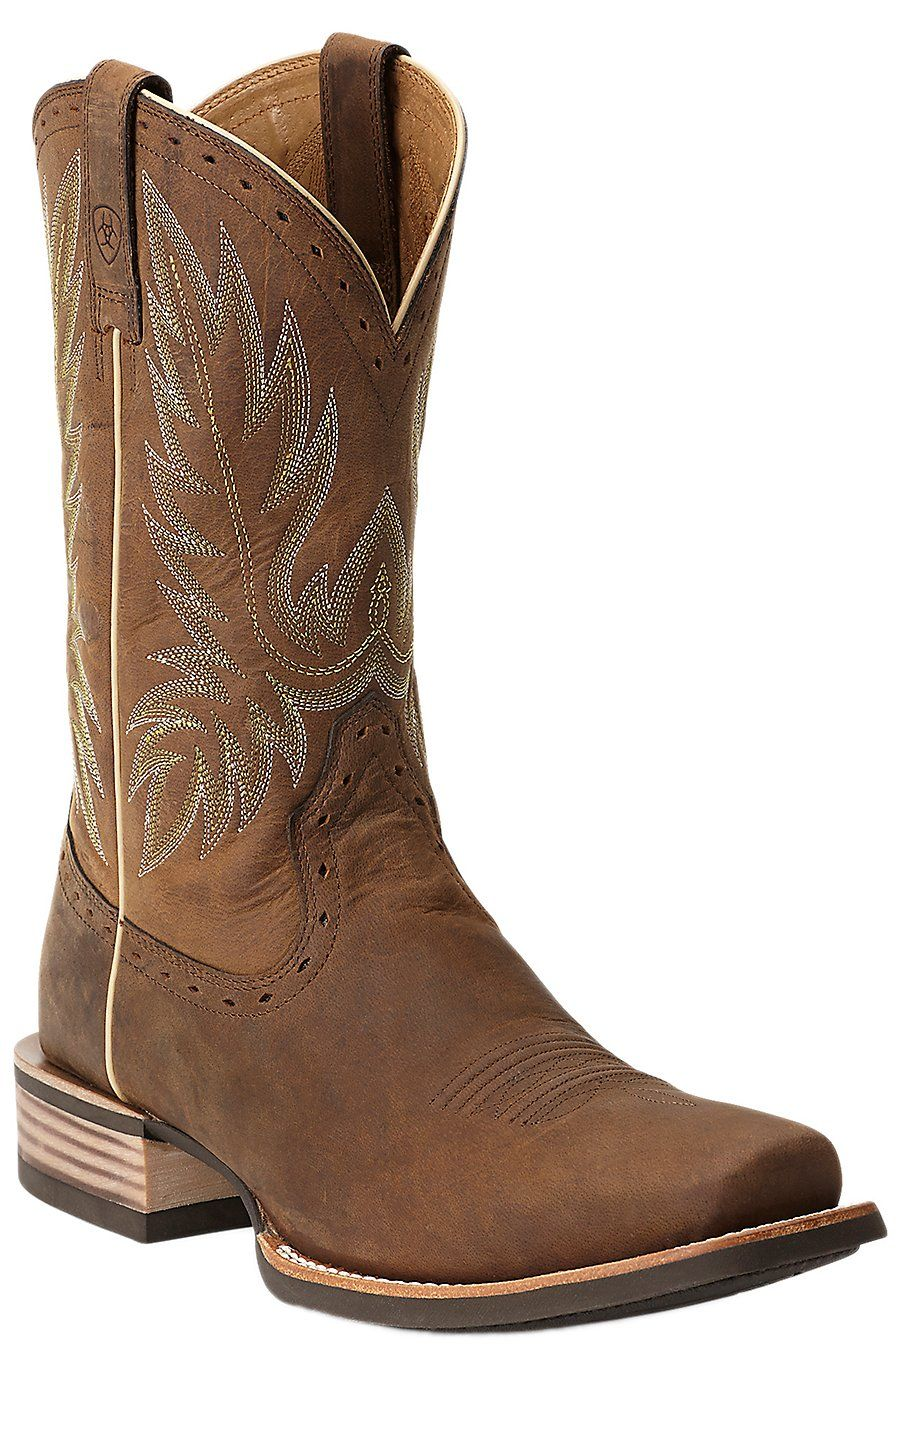 Ariat® Crossbred™ Men s Distressed Brown Square Toe Cowboy Boots ... e9824bda07e